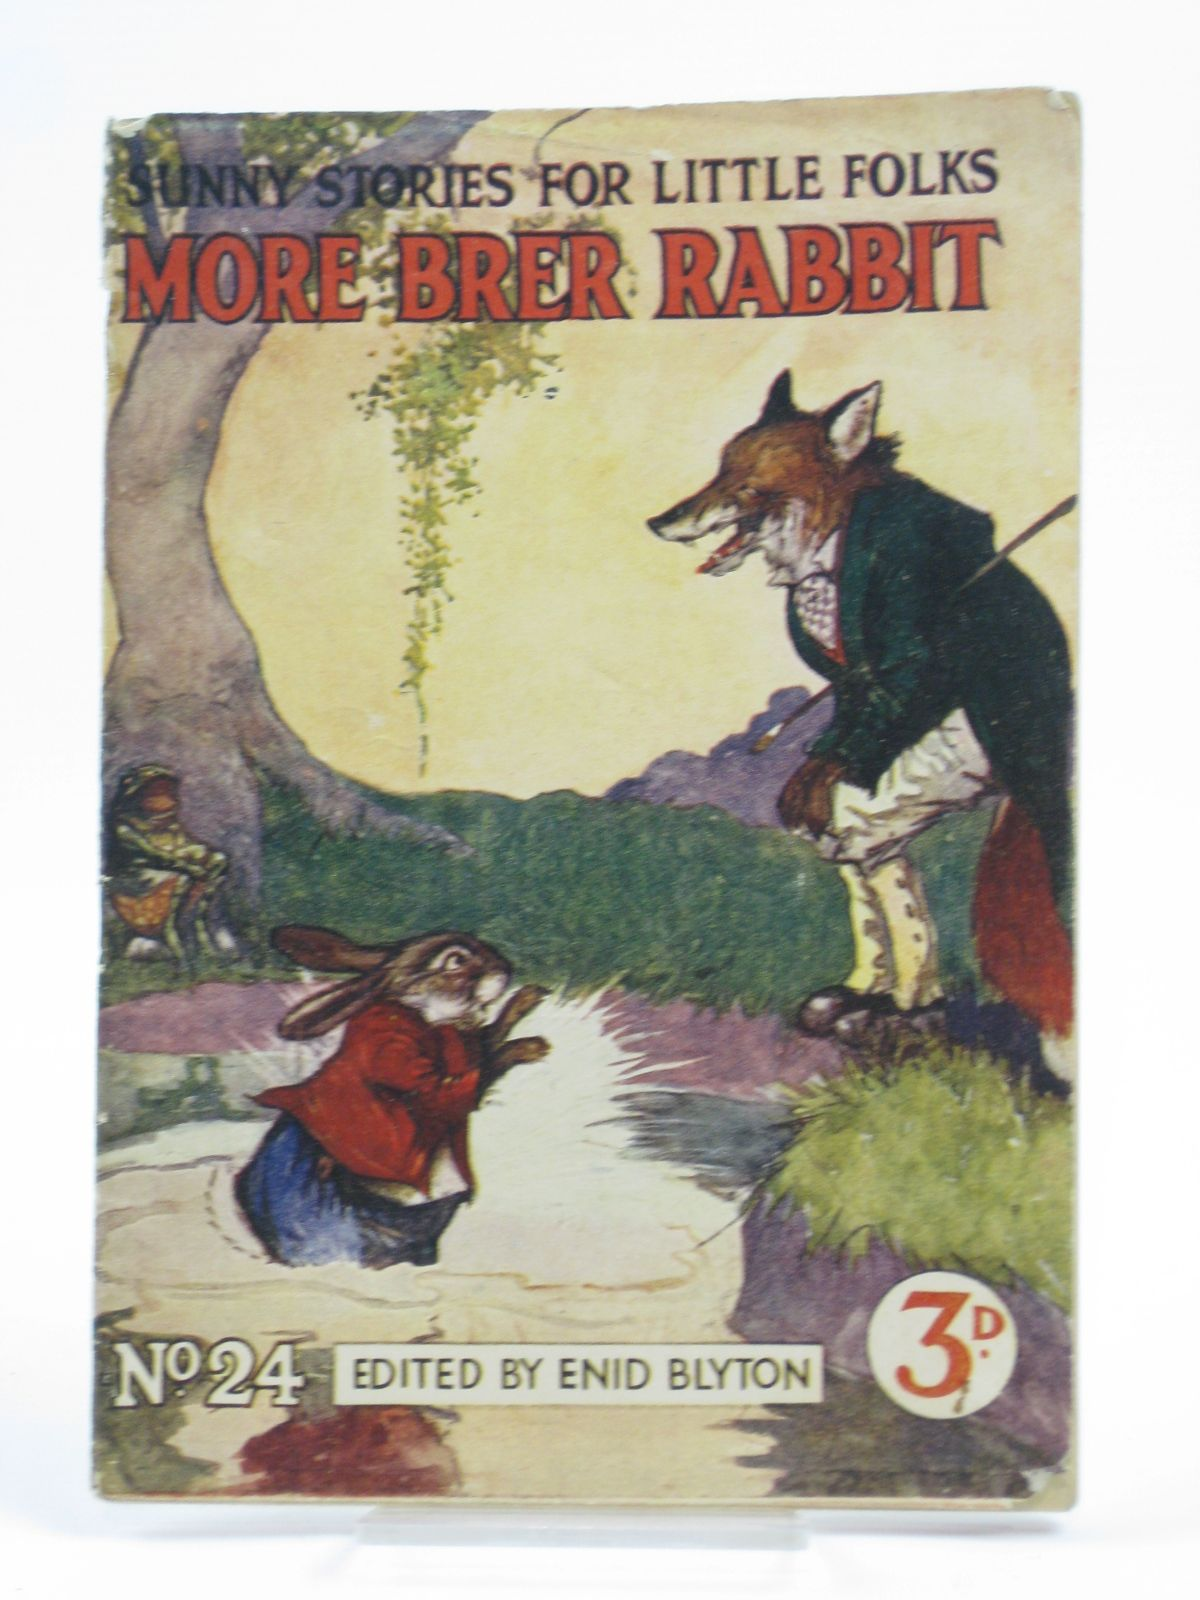 Photo of SUNNY STORIES FOR LITTLE FOLKS No. 24 MORE BRER RABBIT